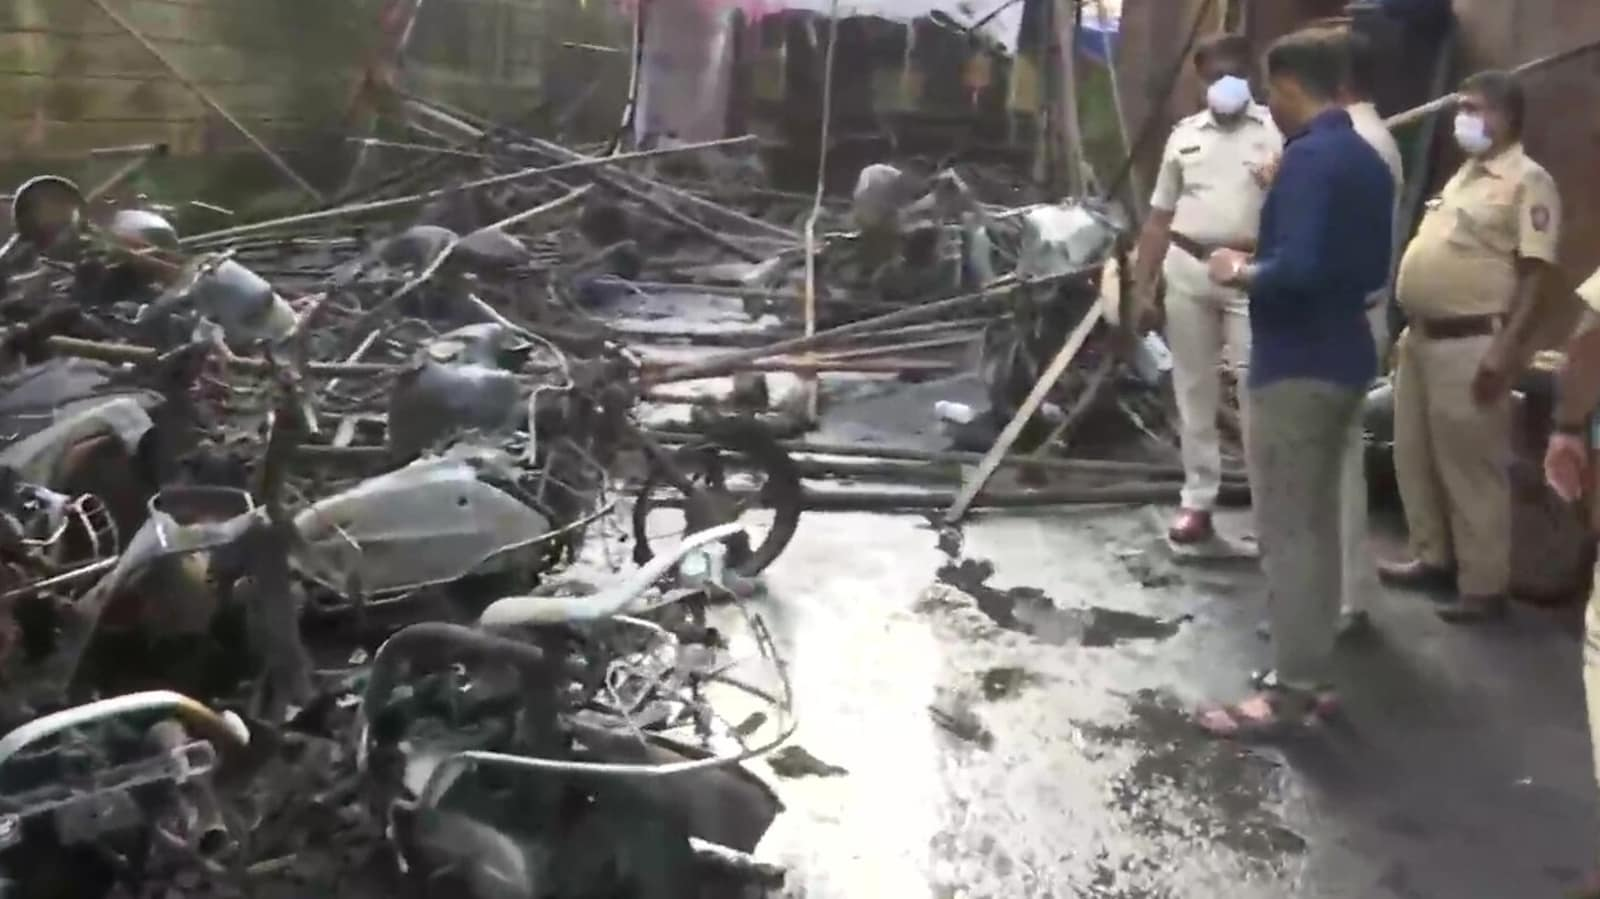 Massive fire breaks out in Mumbai's Kurla, 20 motorcycles gutted